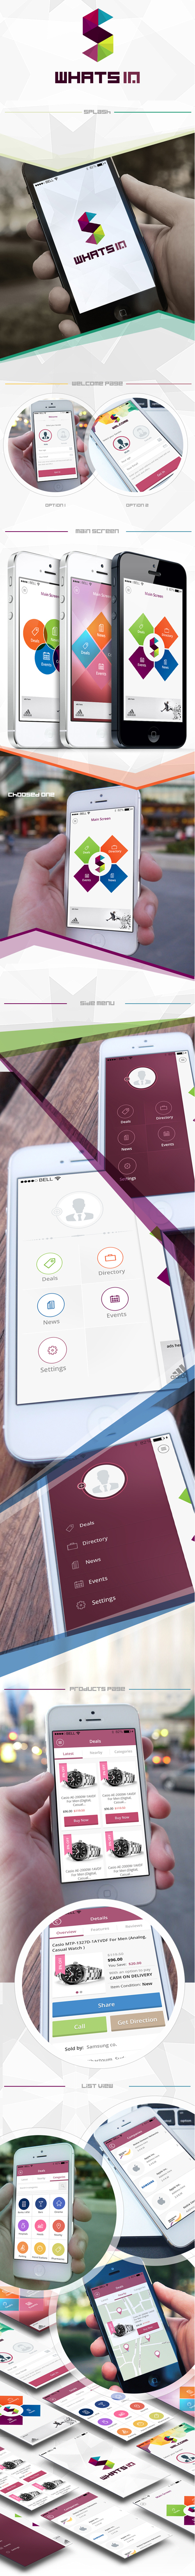 Amazing Mobile App UI Designs with Ultimate User Experience - 41